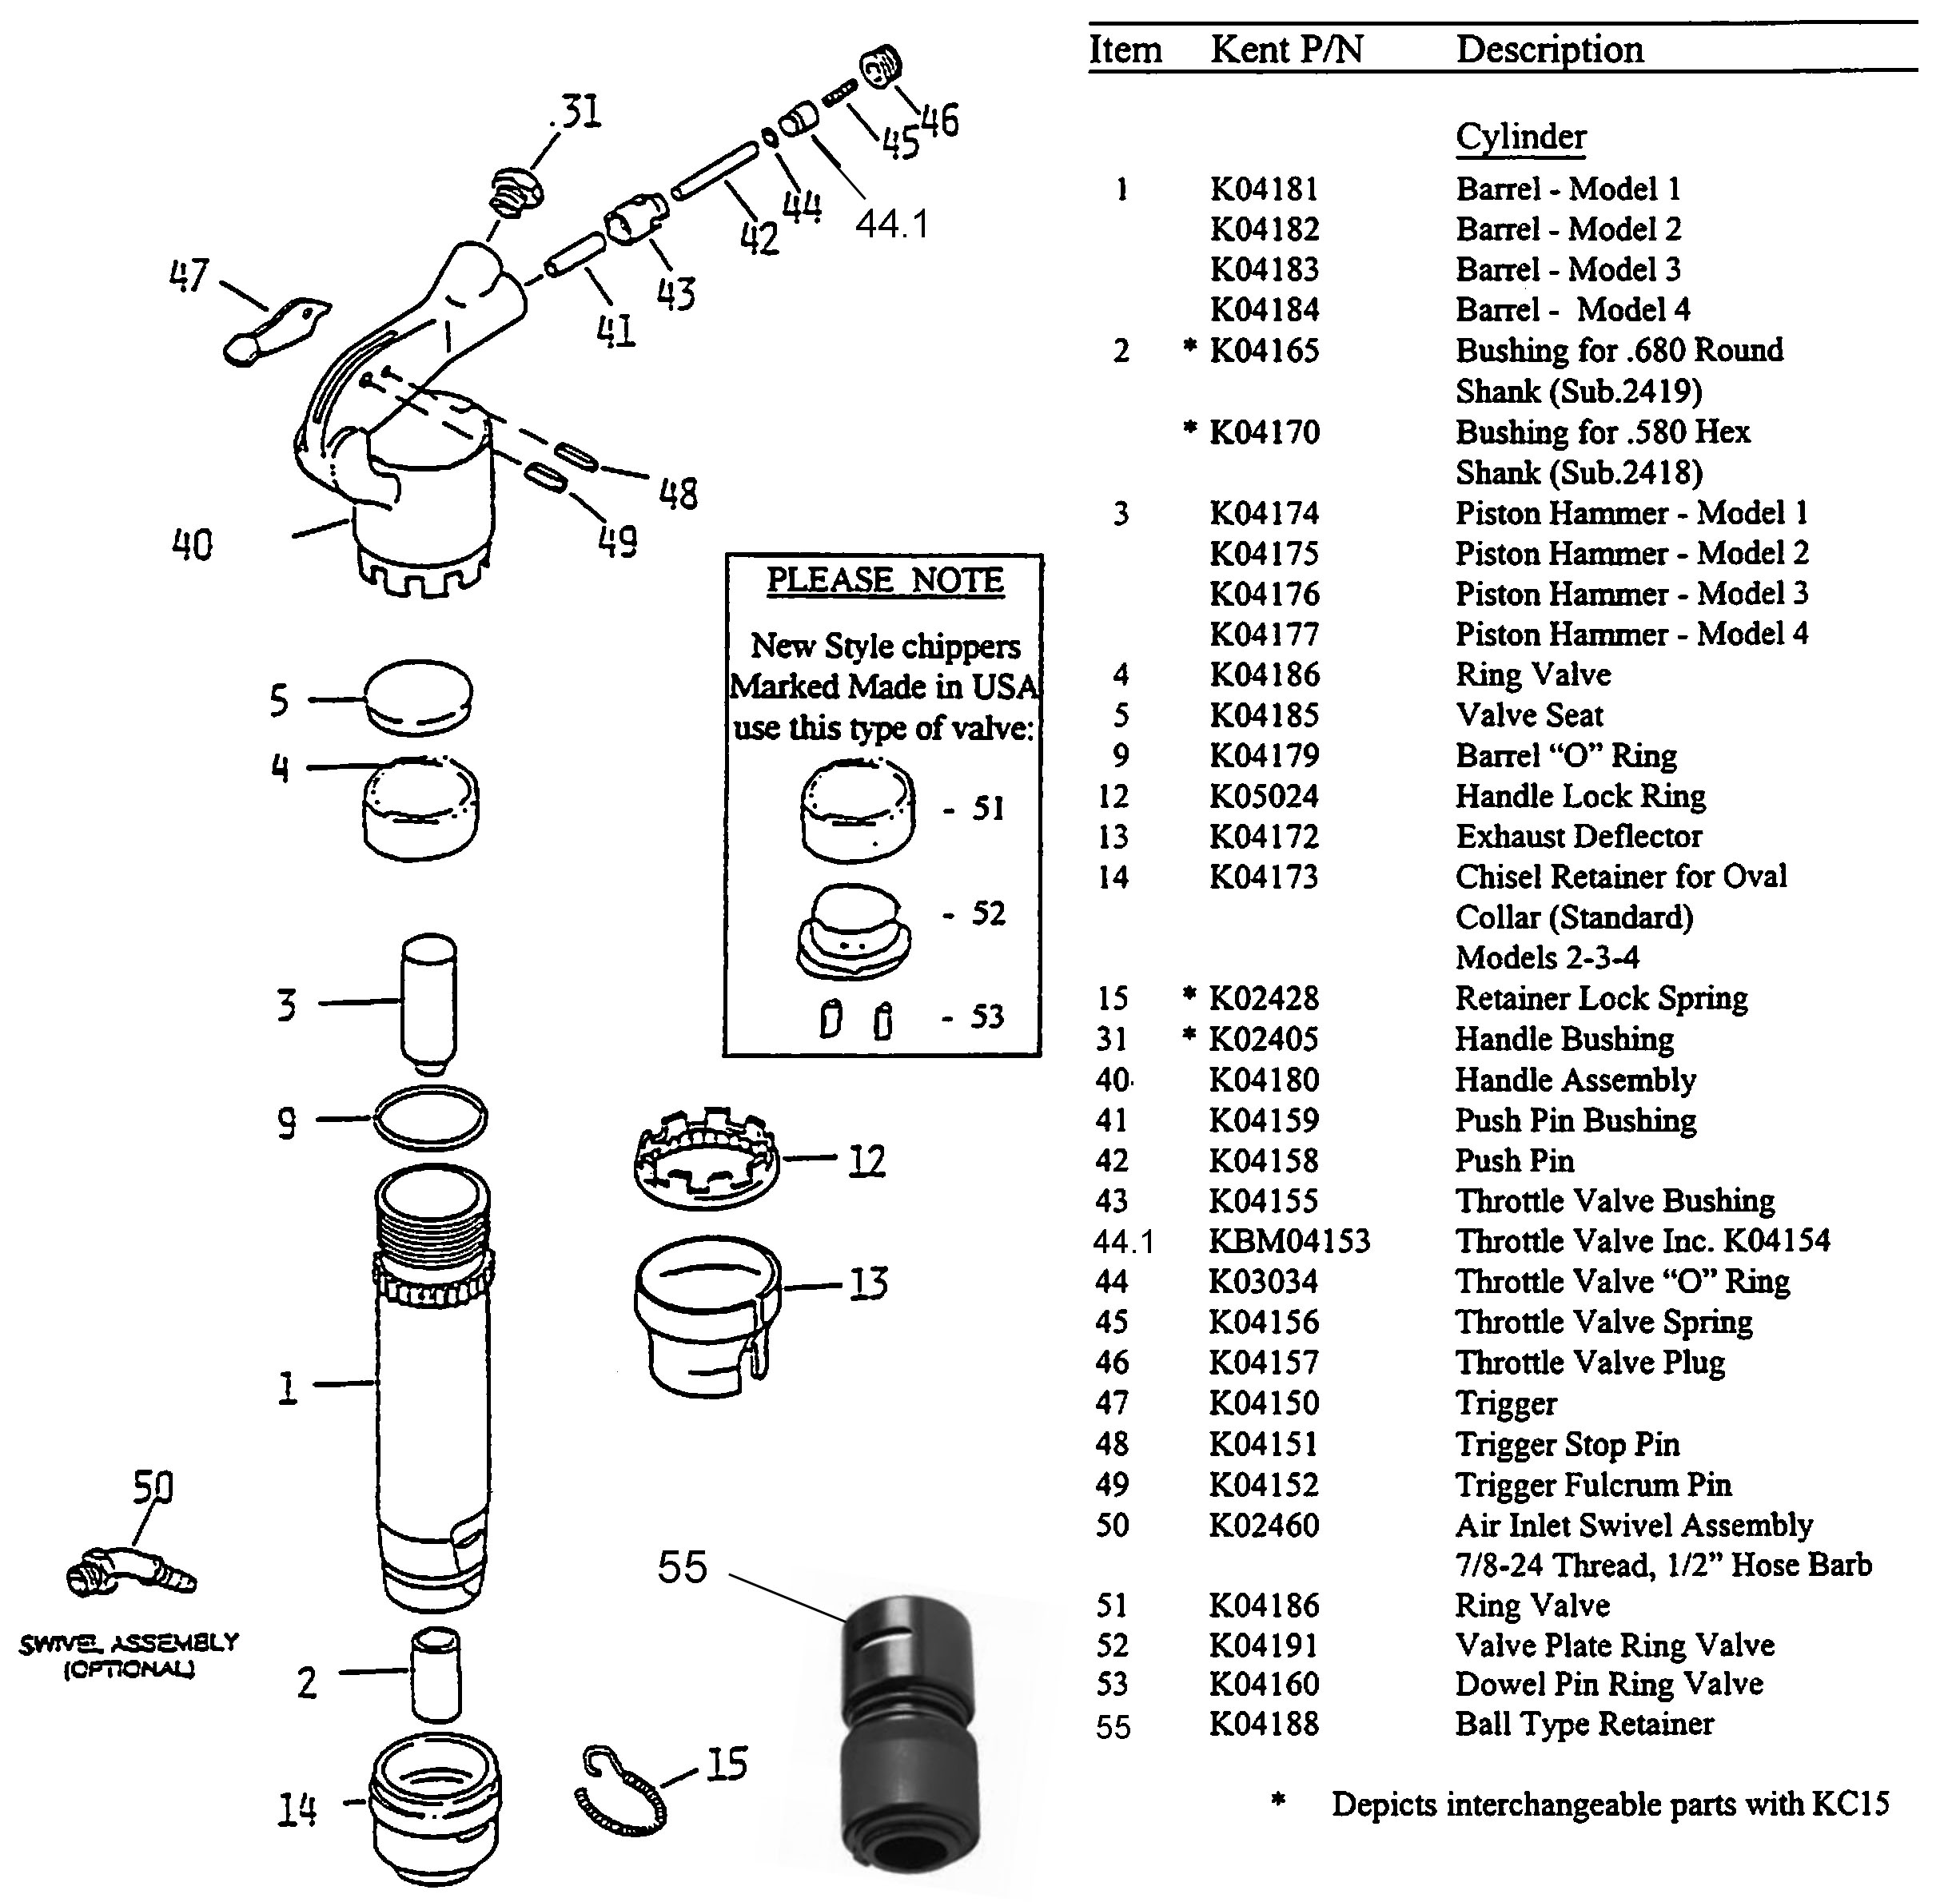 Arctic Cat Wiring Diagram as well Fuel Pump Relay Location 1994 furthermore Kawasaki 300 Wiring Diagram as well Search additionally Polaris Scrambler Wiring Diagram. on zr 580 wiring diagram